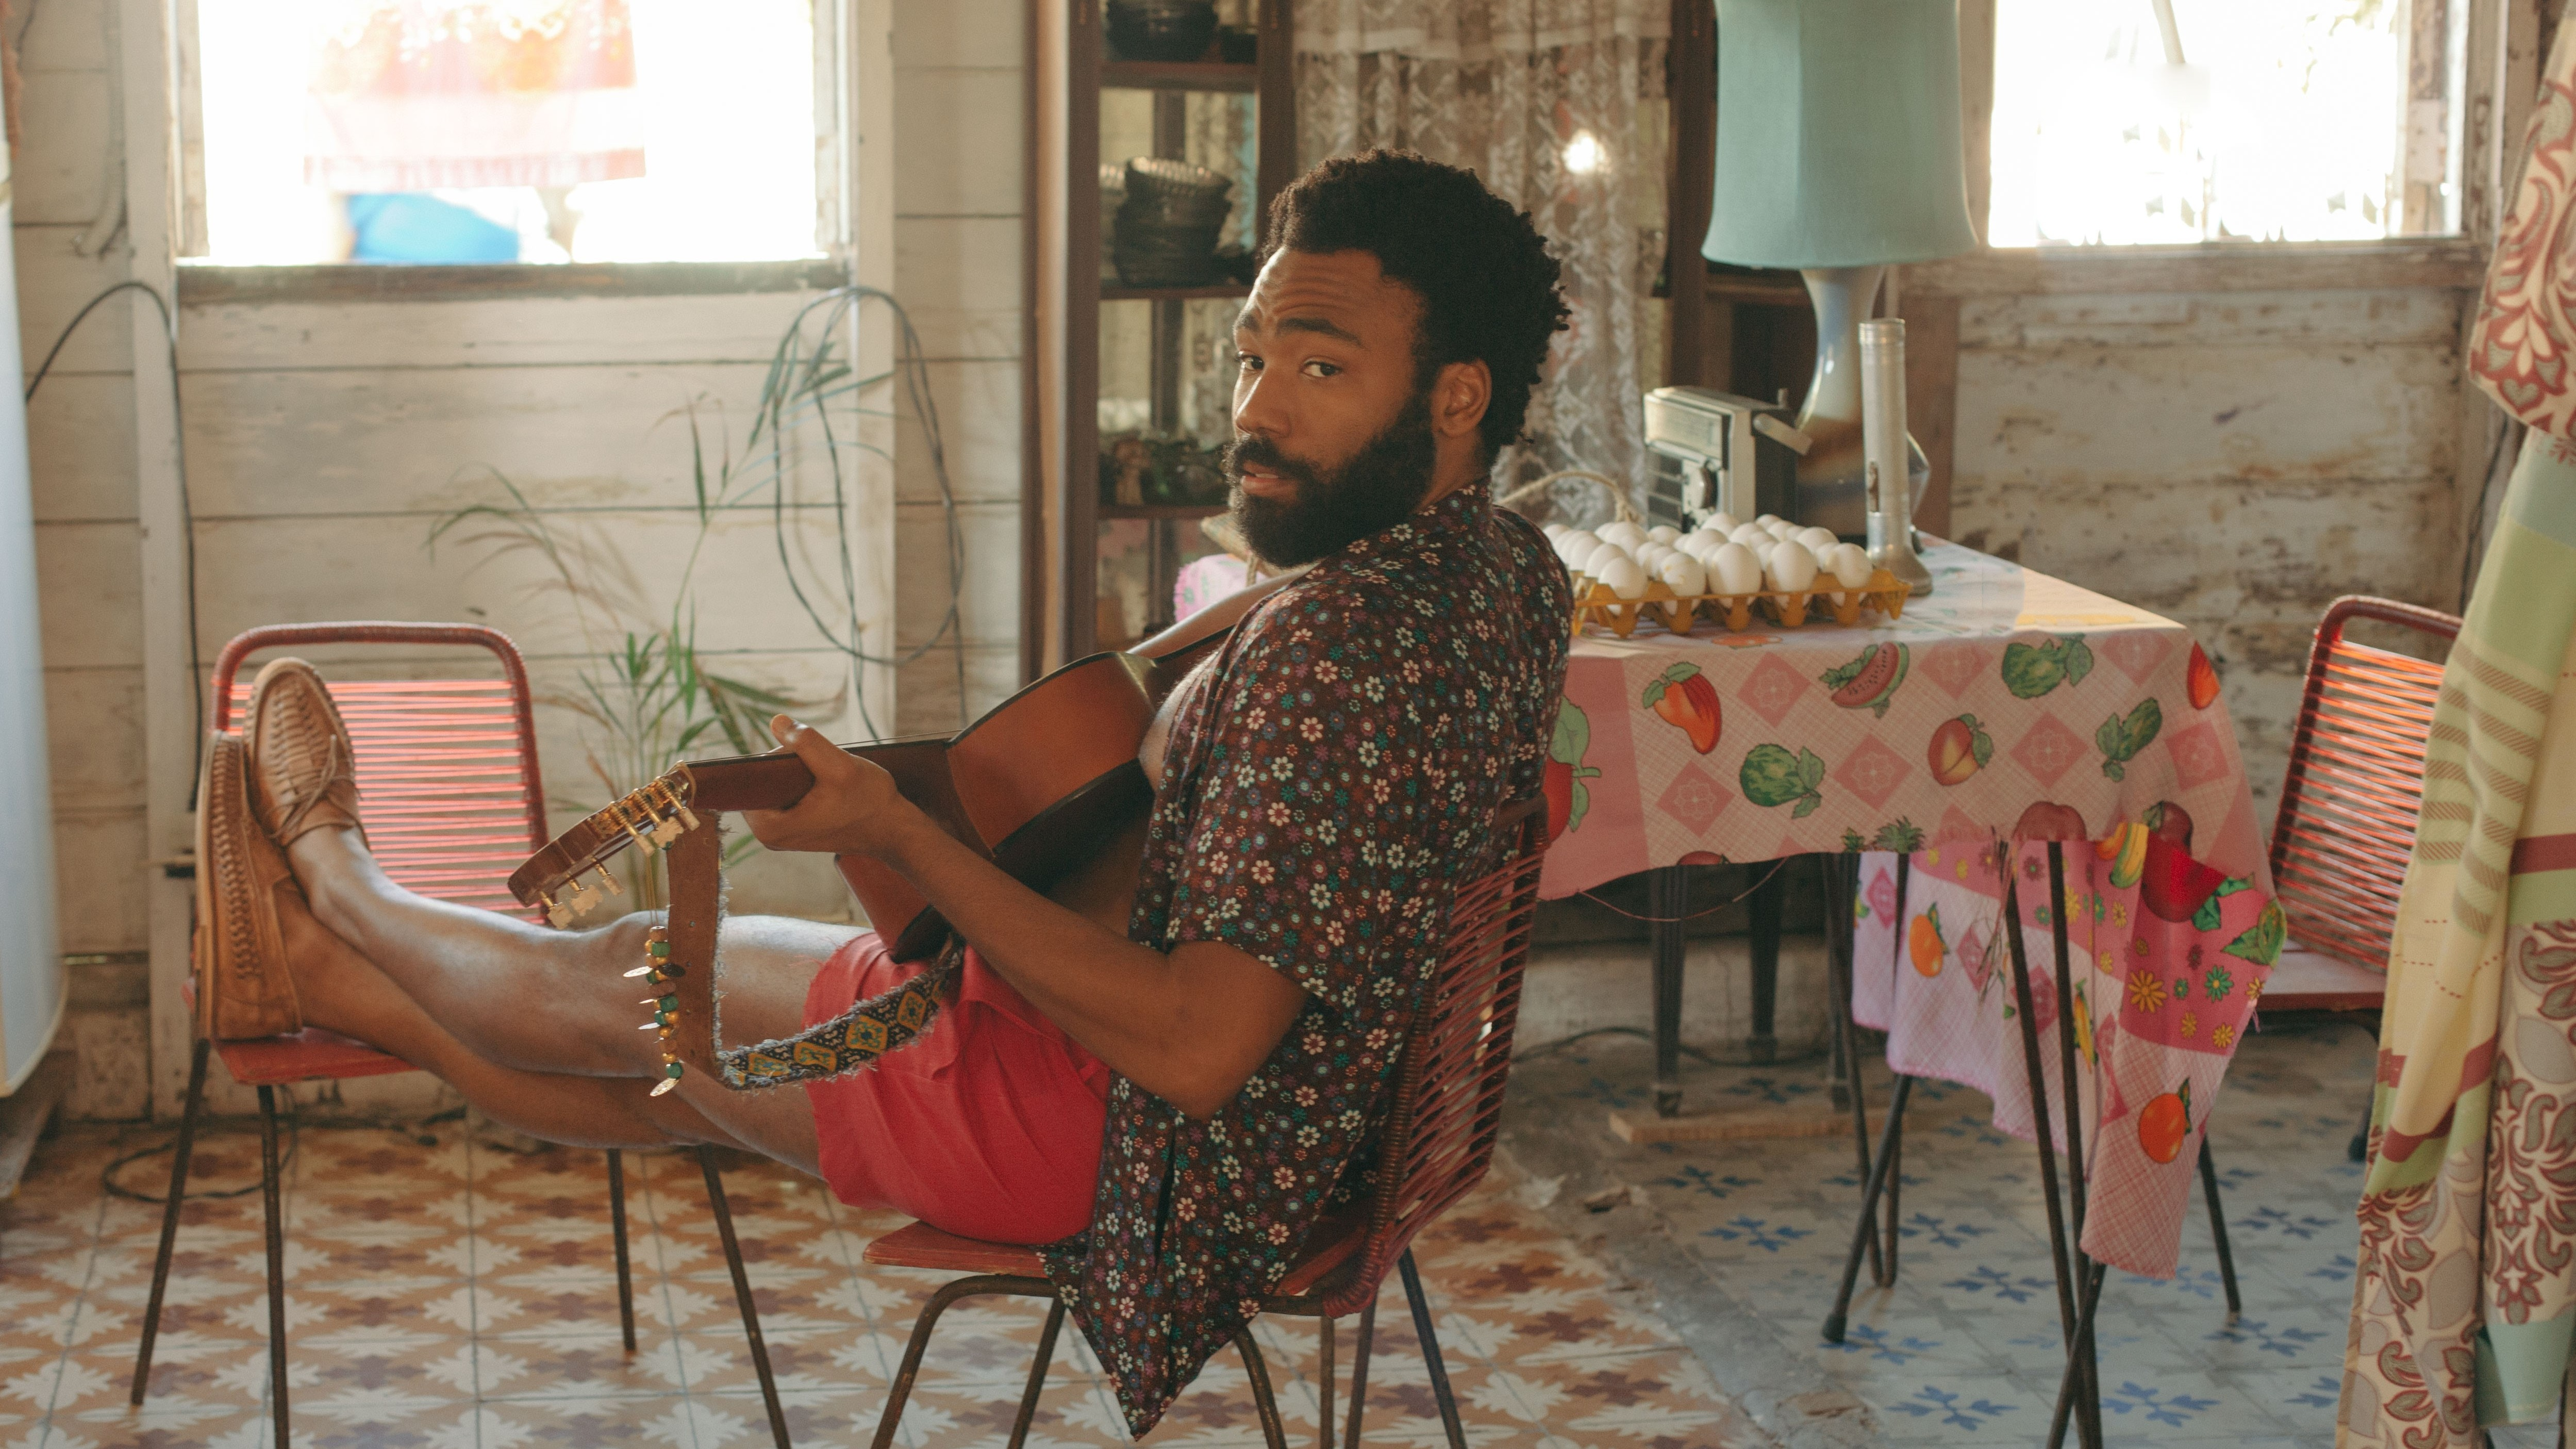 Donald Glover in a still from Guava Island, which he stars in with Rihanna. The film premiered at Coachella, where Glover's musical act Childish Gambino headlined on Friday.